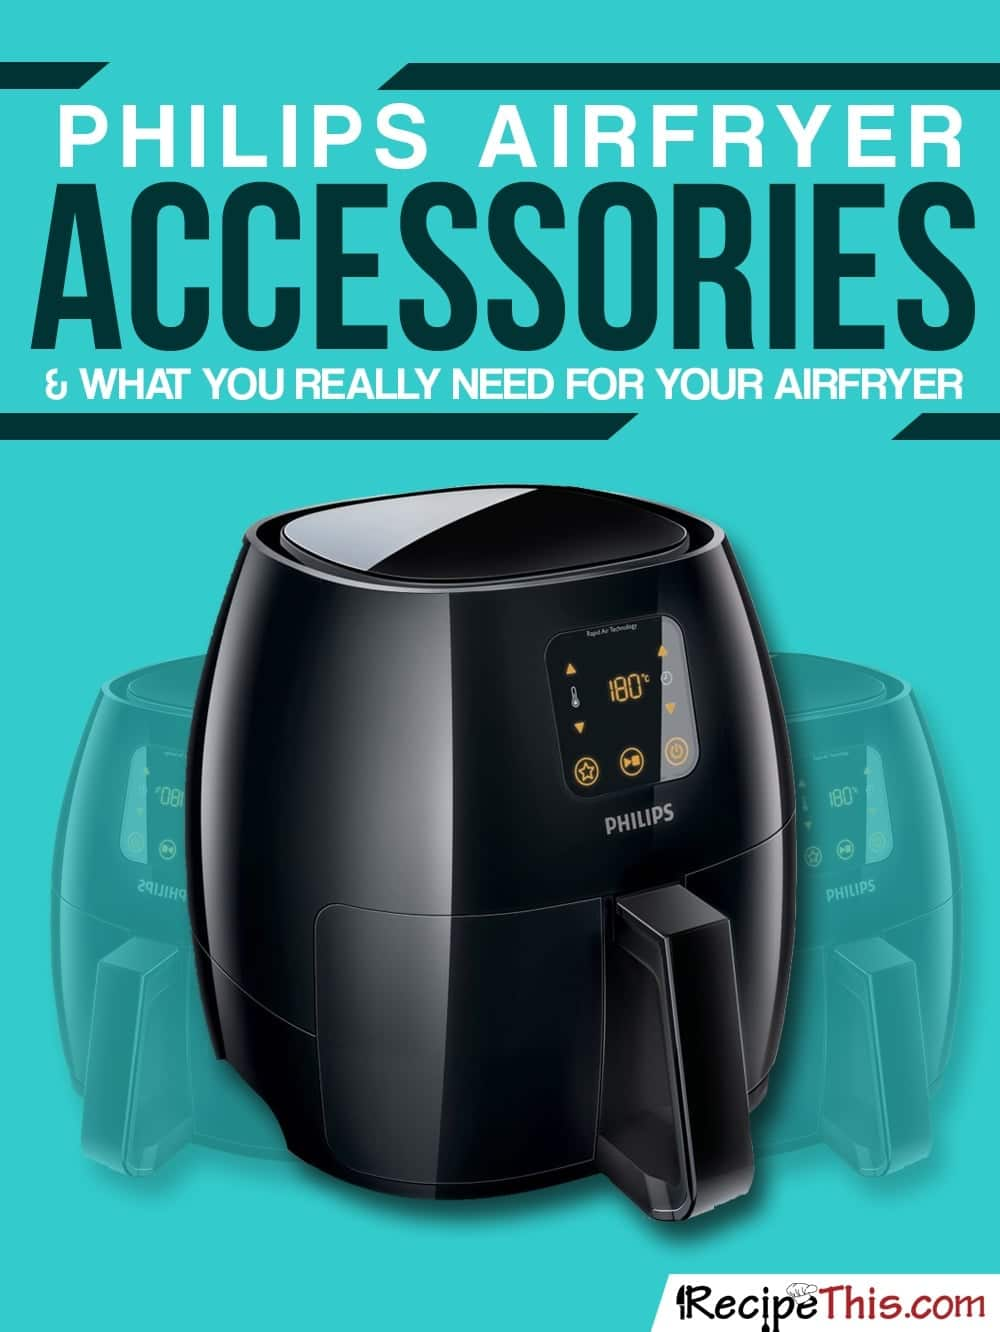 Philips Airfryer Accessories | Recipe This